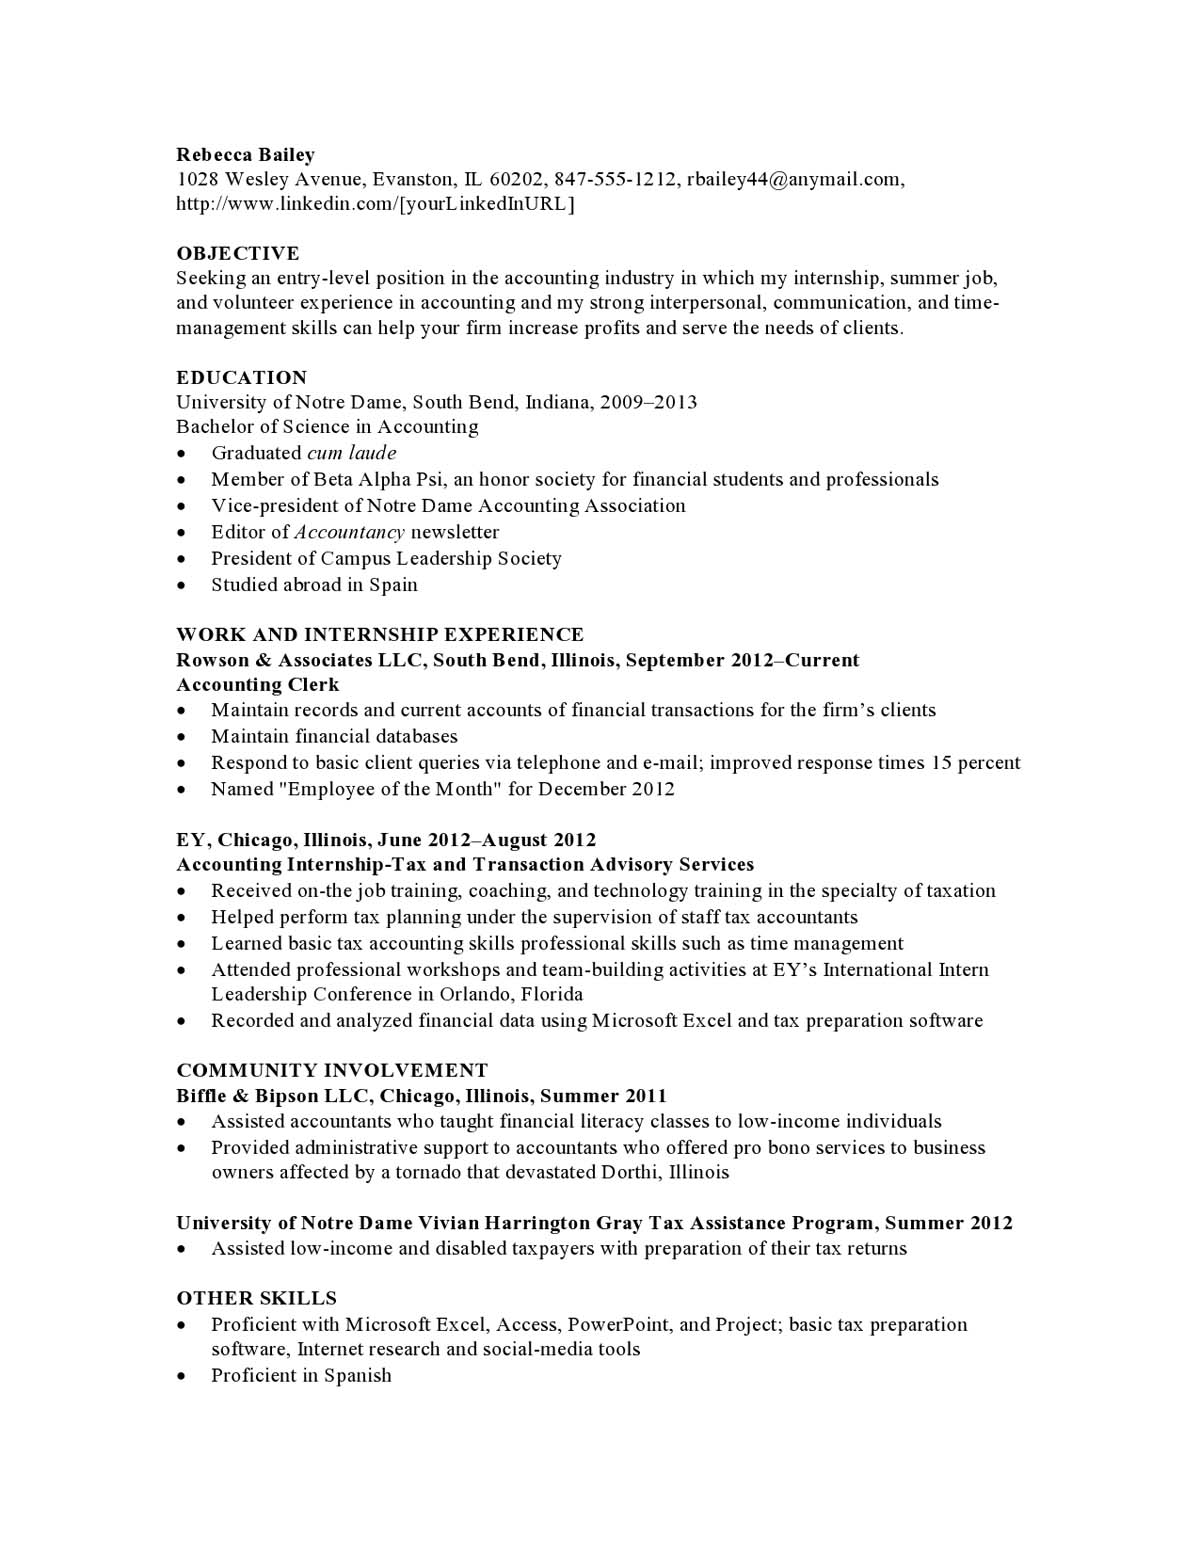 resume samples templates examples vault accounting resumes entry level crescoact19 Resume Accounting Resumes Samples Entry Level